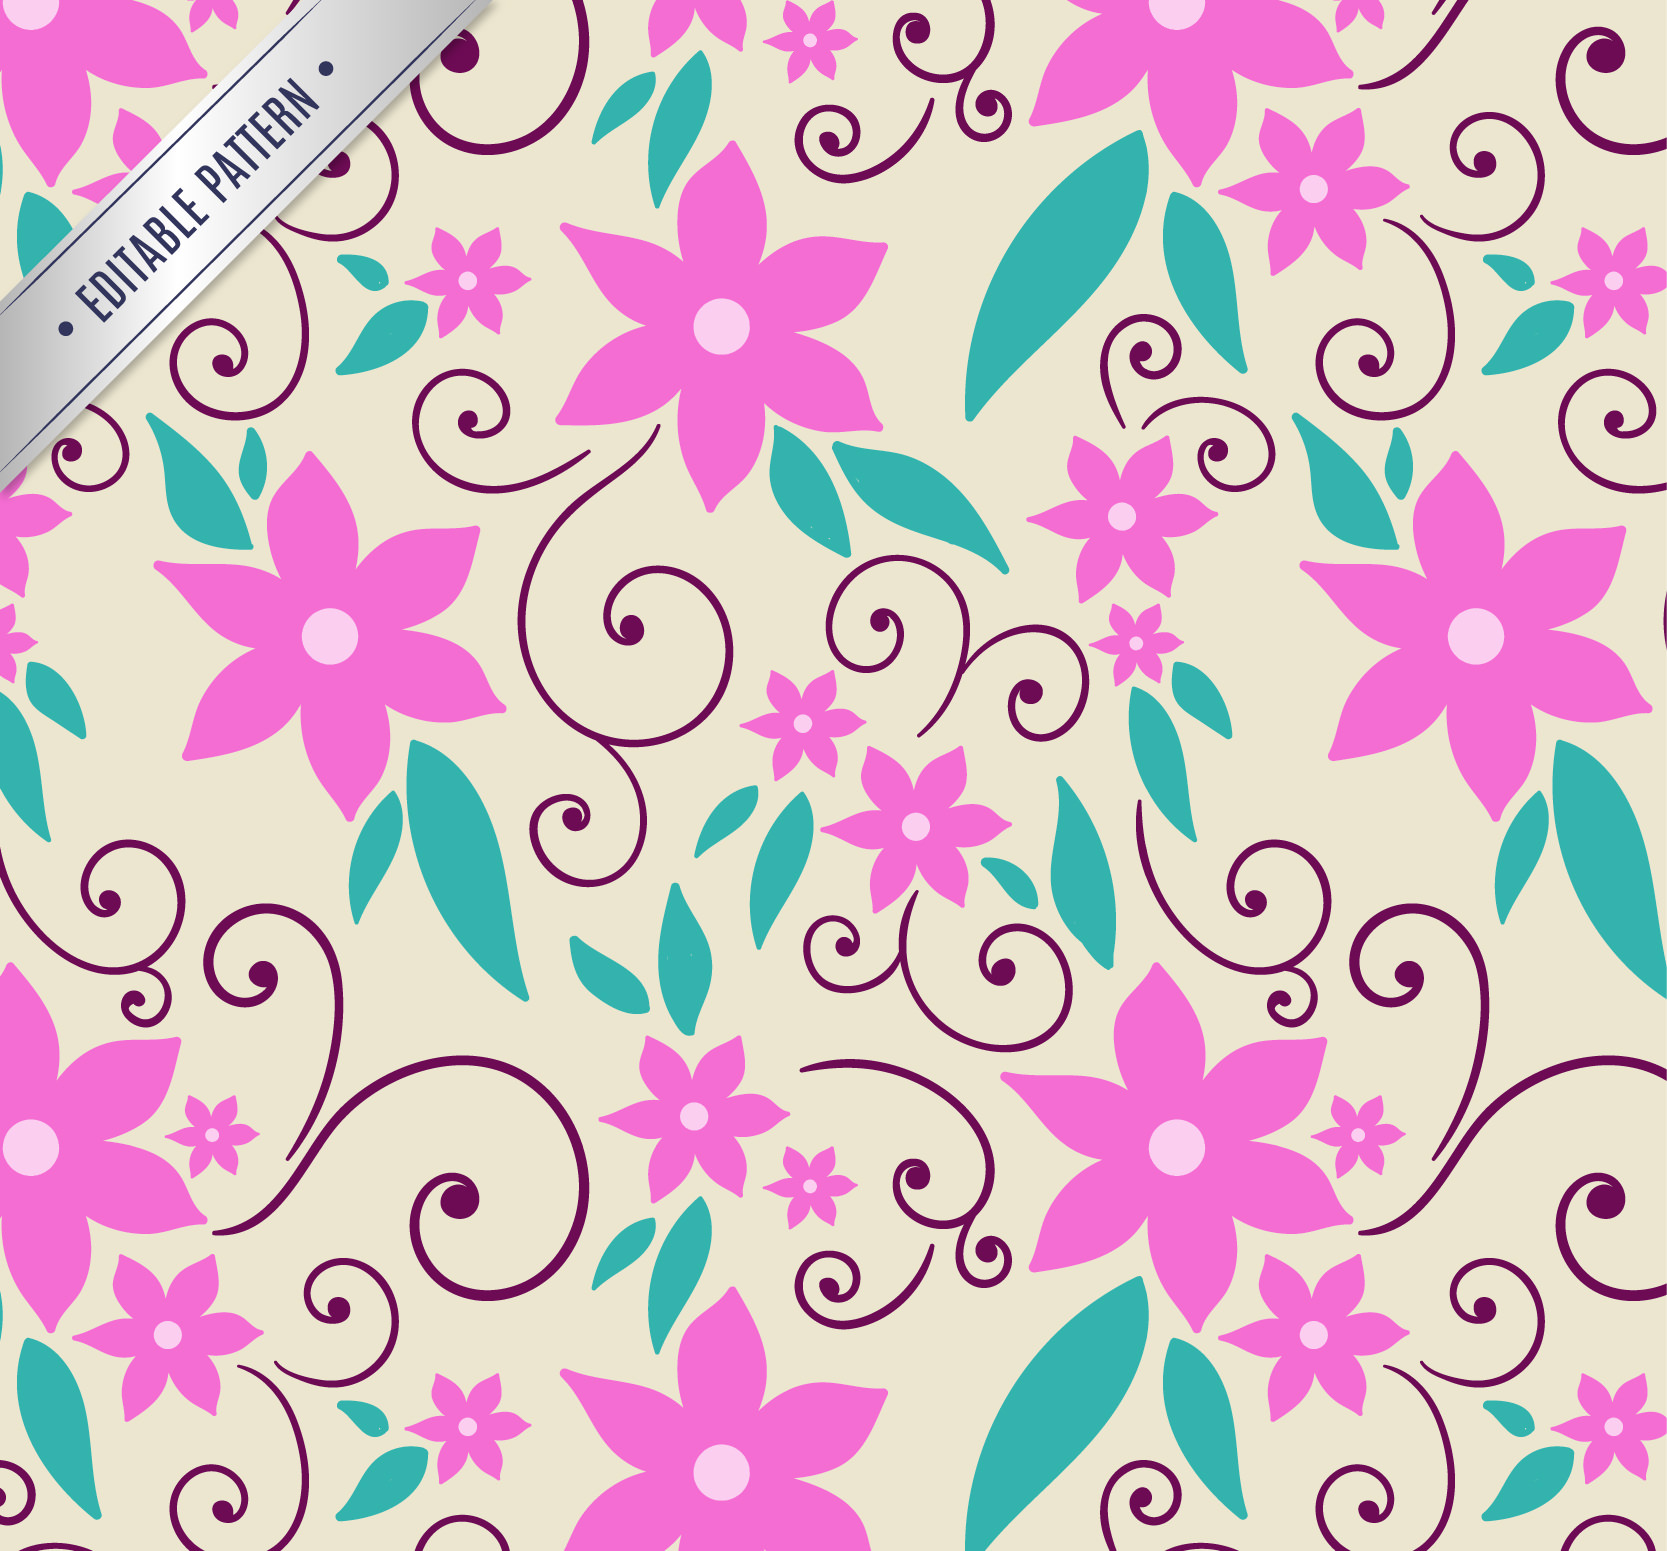 High Res Photoshop Seamless Pink Floral Pattern